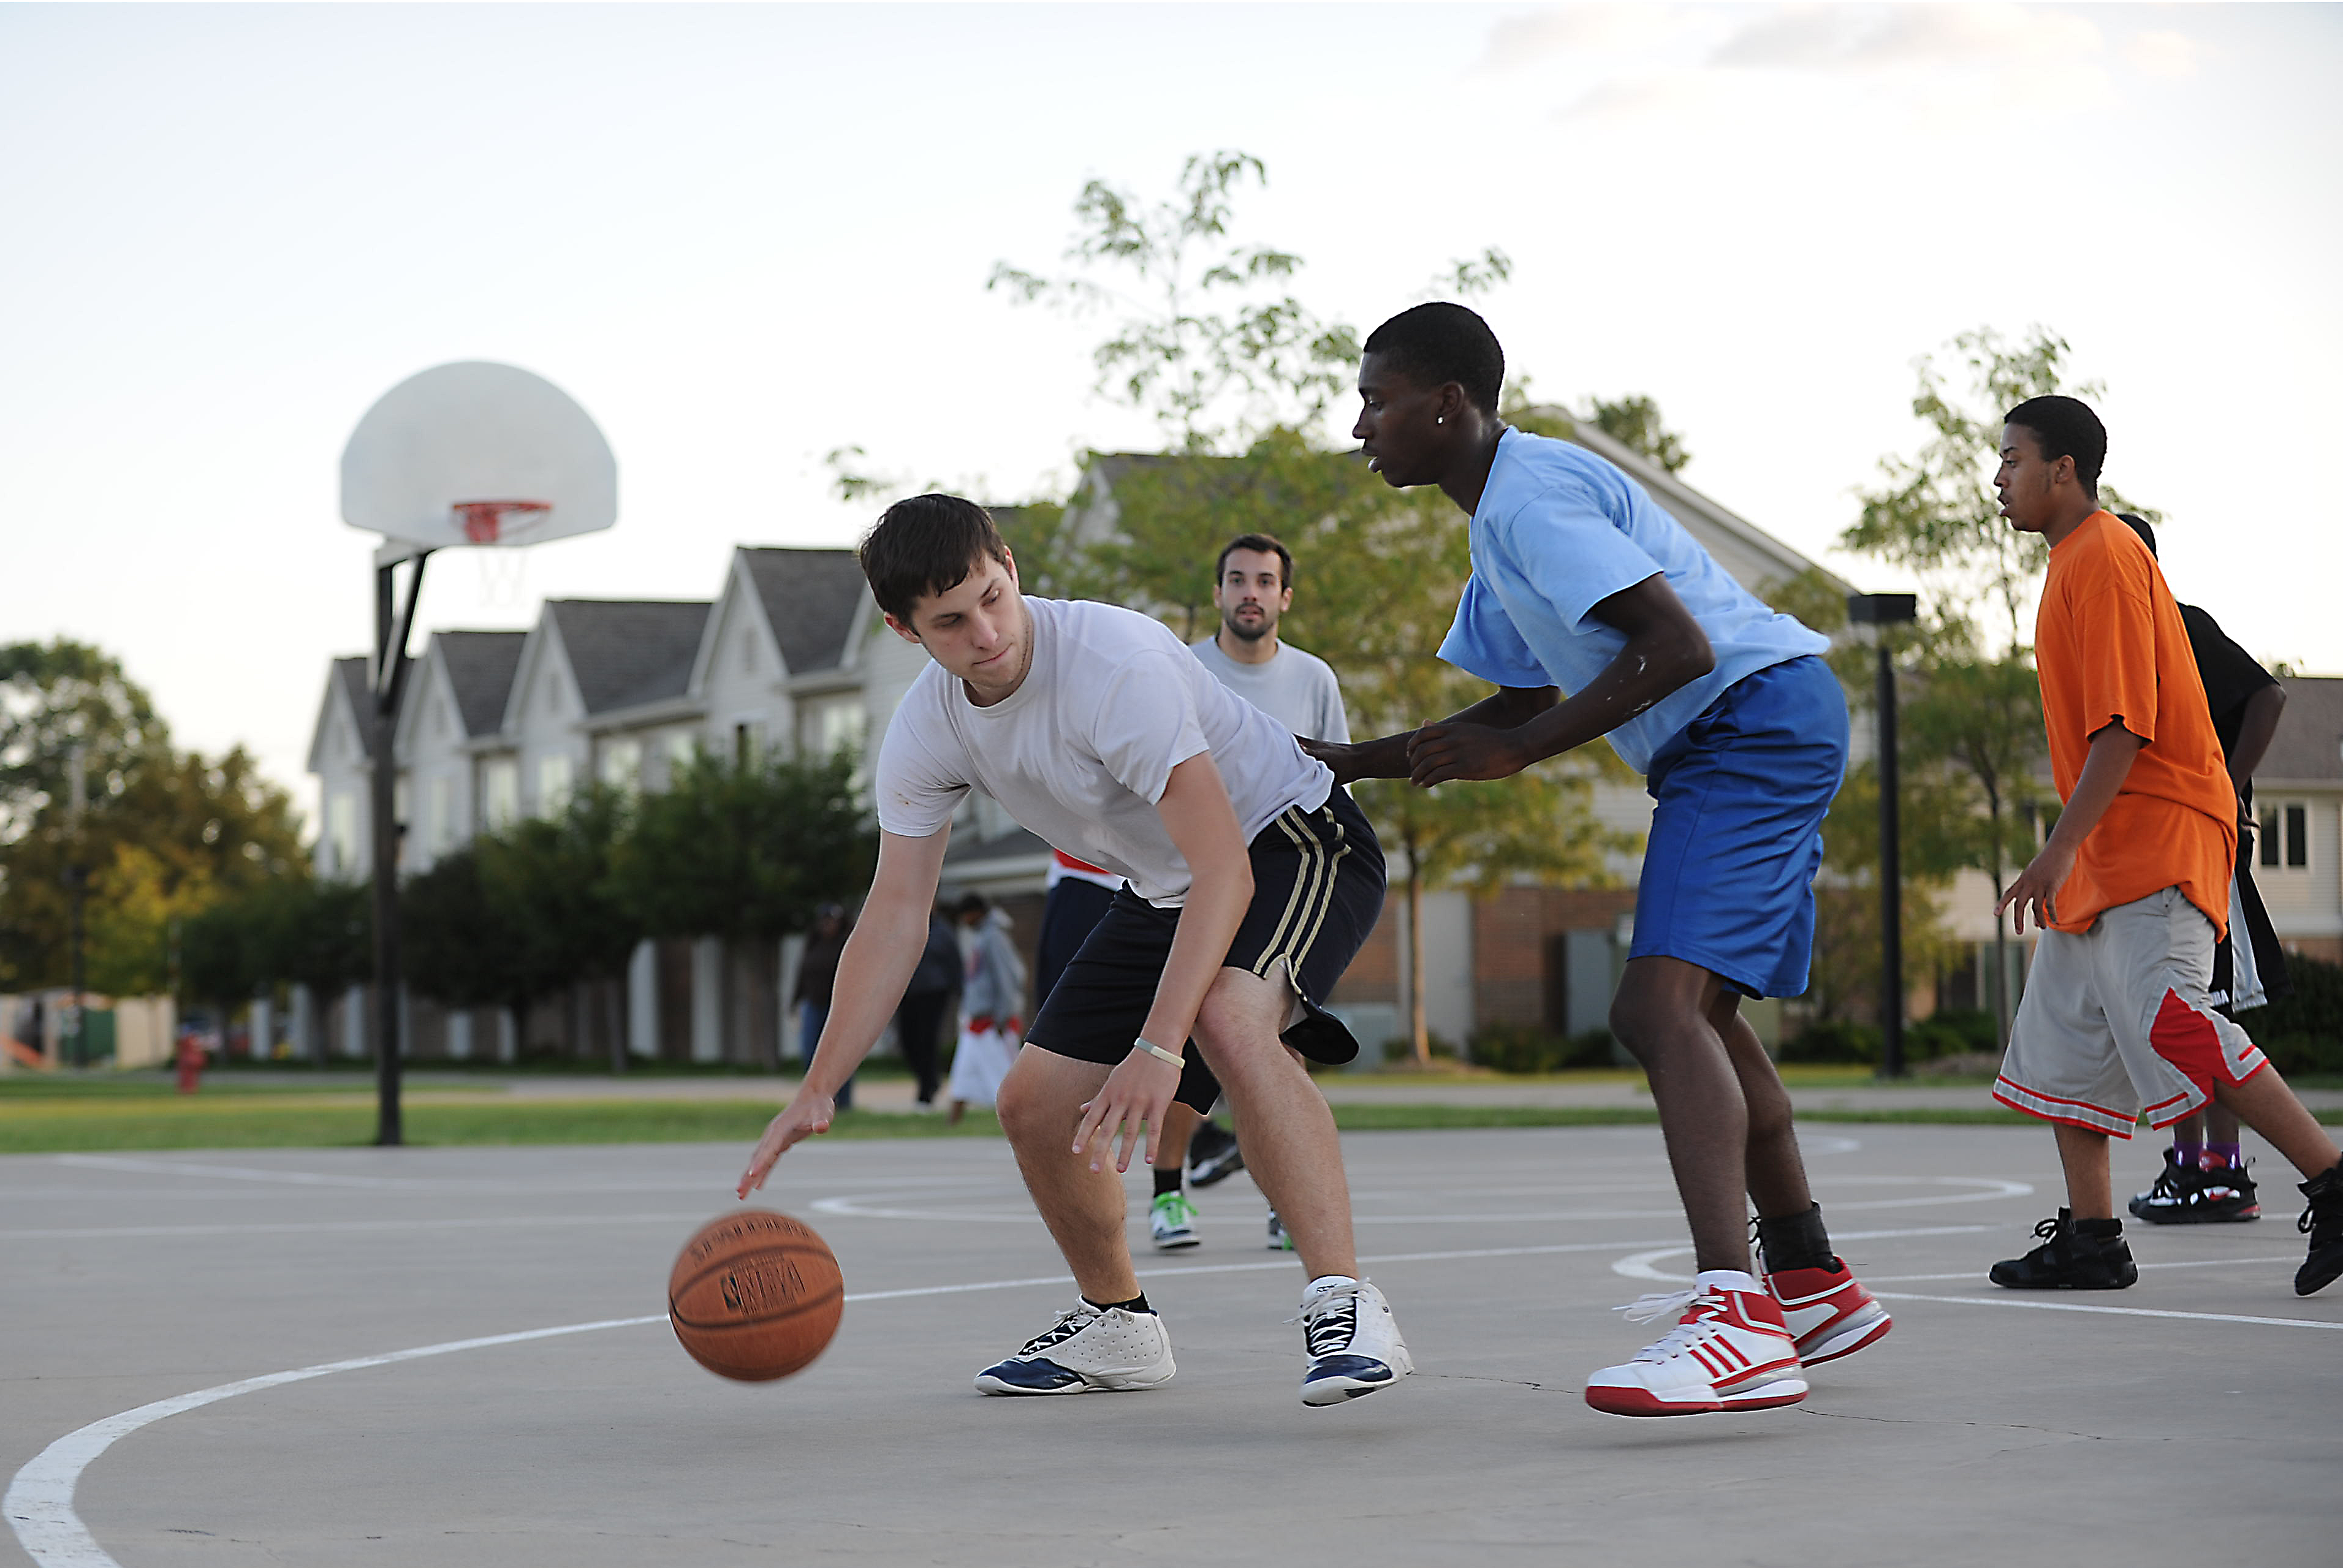 Freshmen students playing basketball.